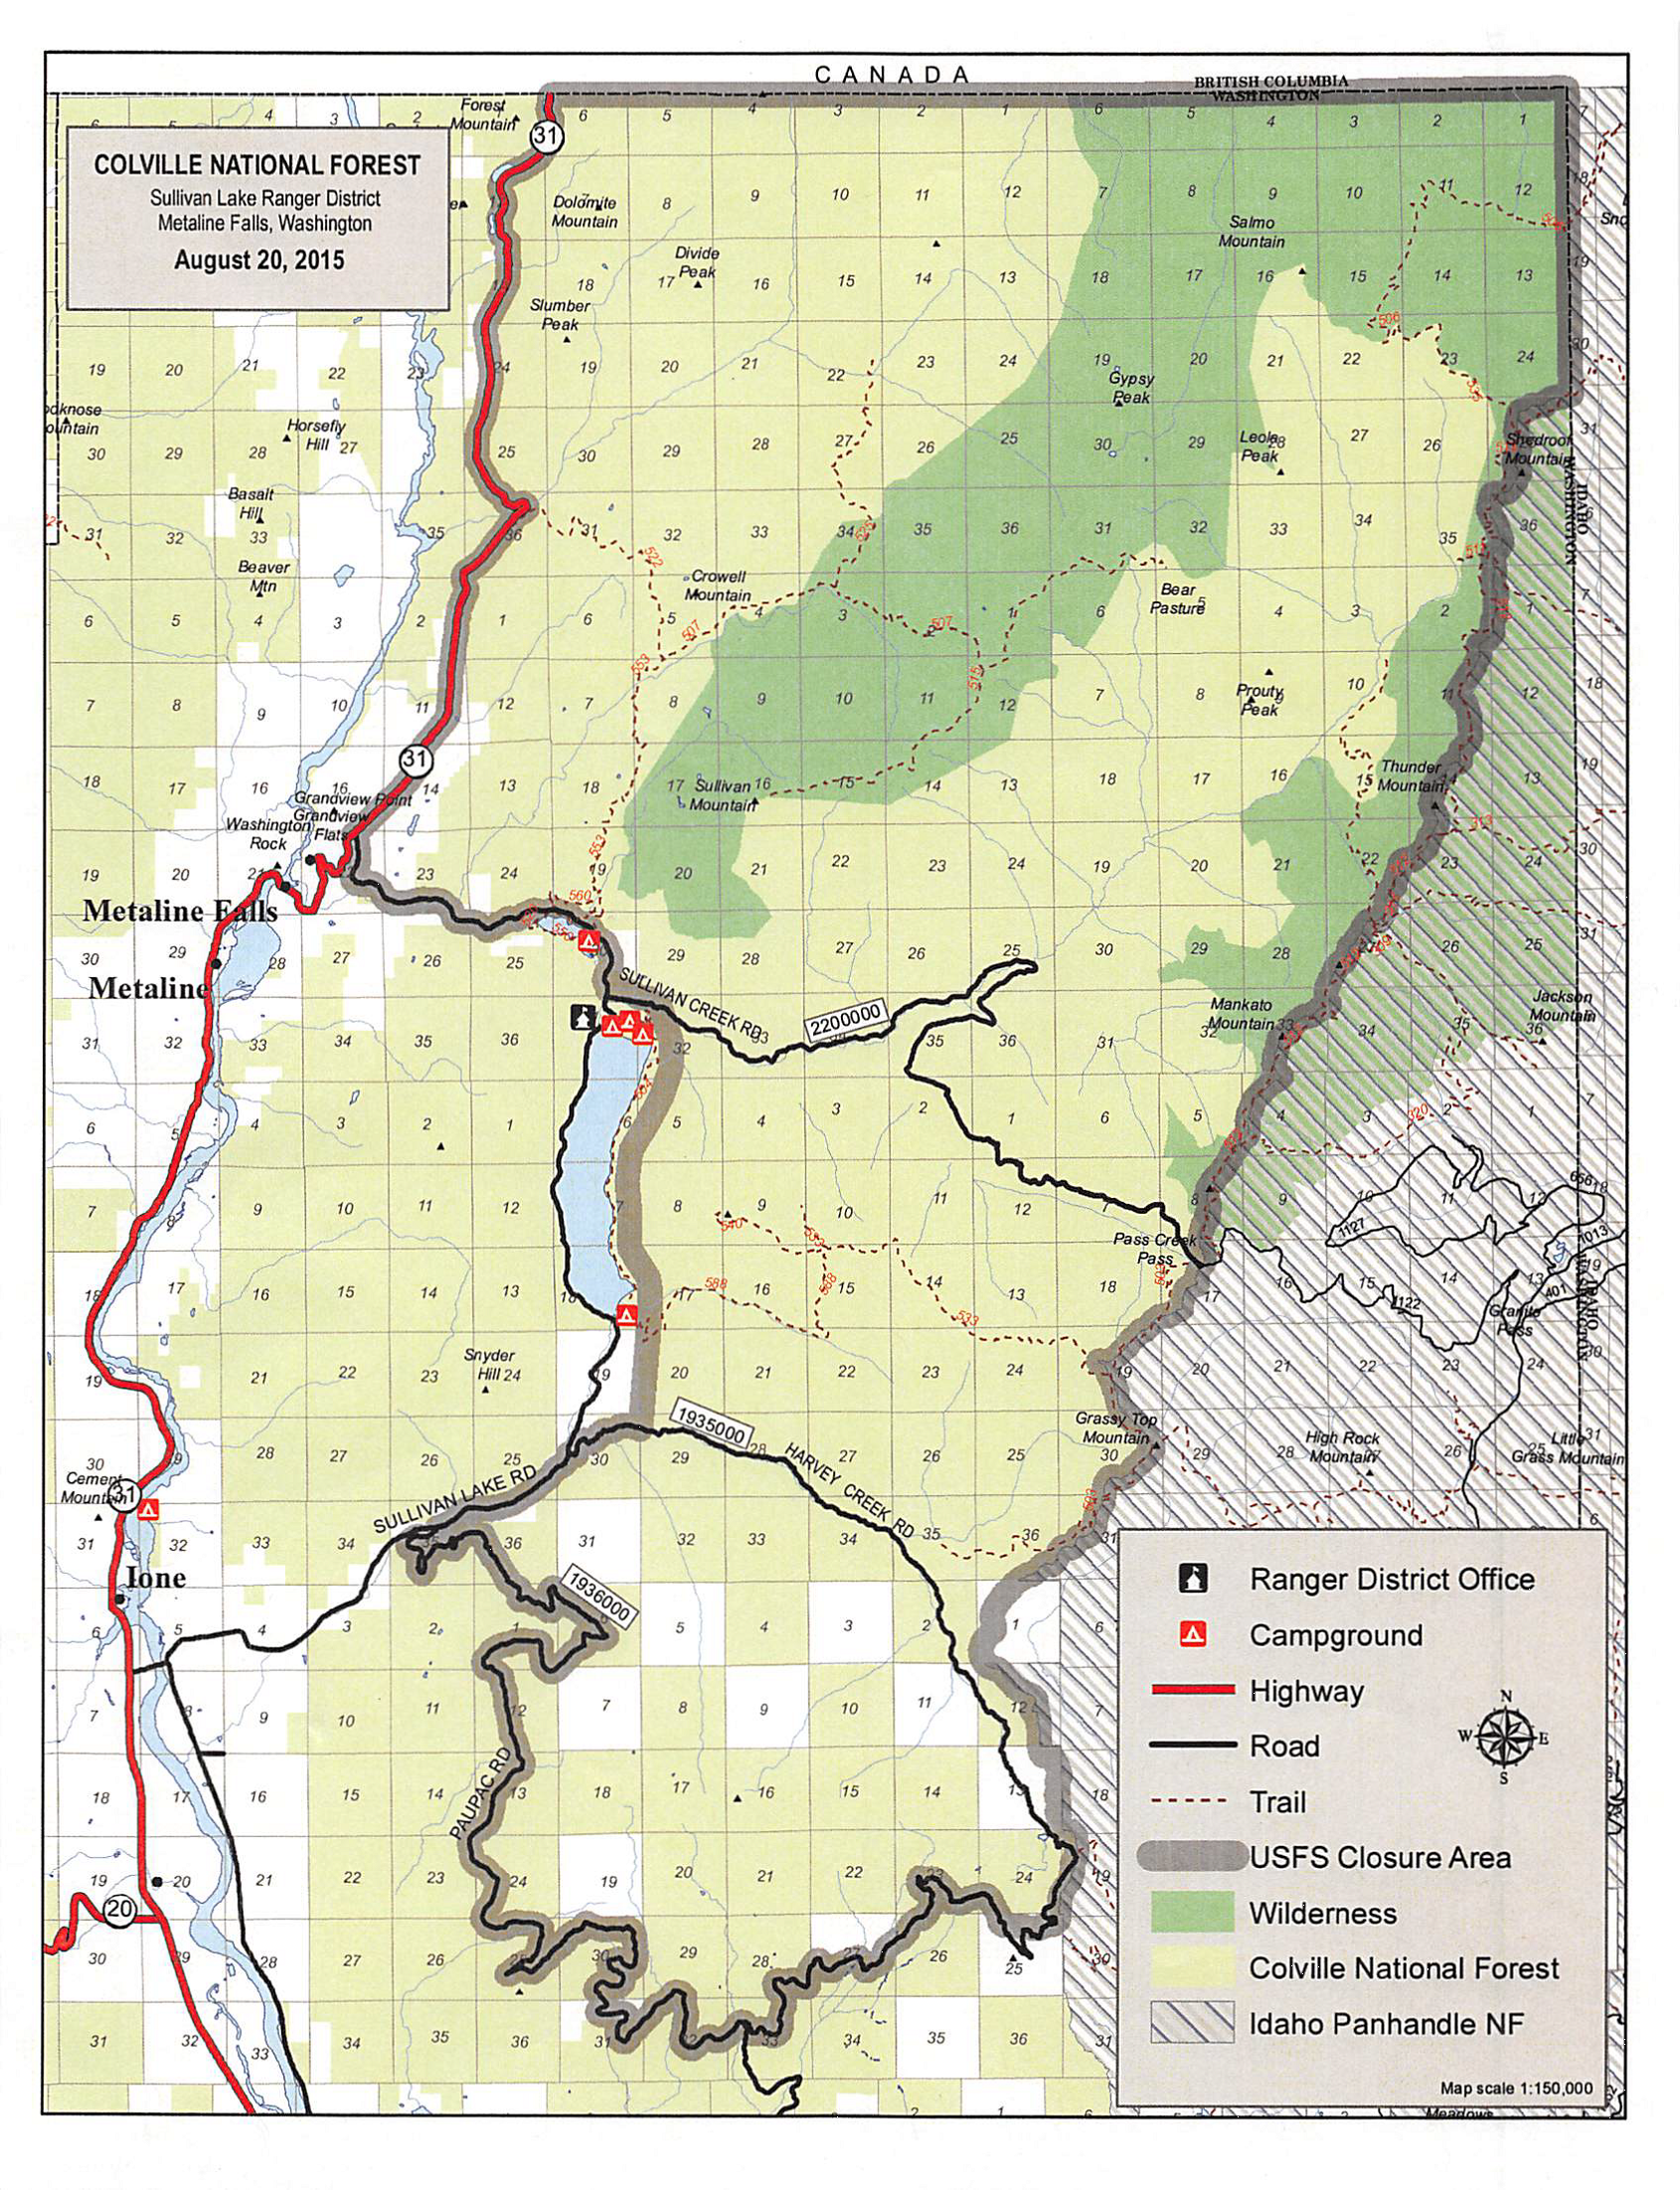 Fire Activity Causes Colville Forest To Close Huge Areas To Public - Us forest service ecoregion map